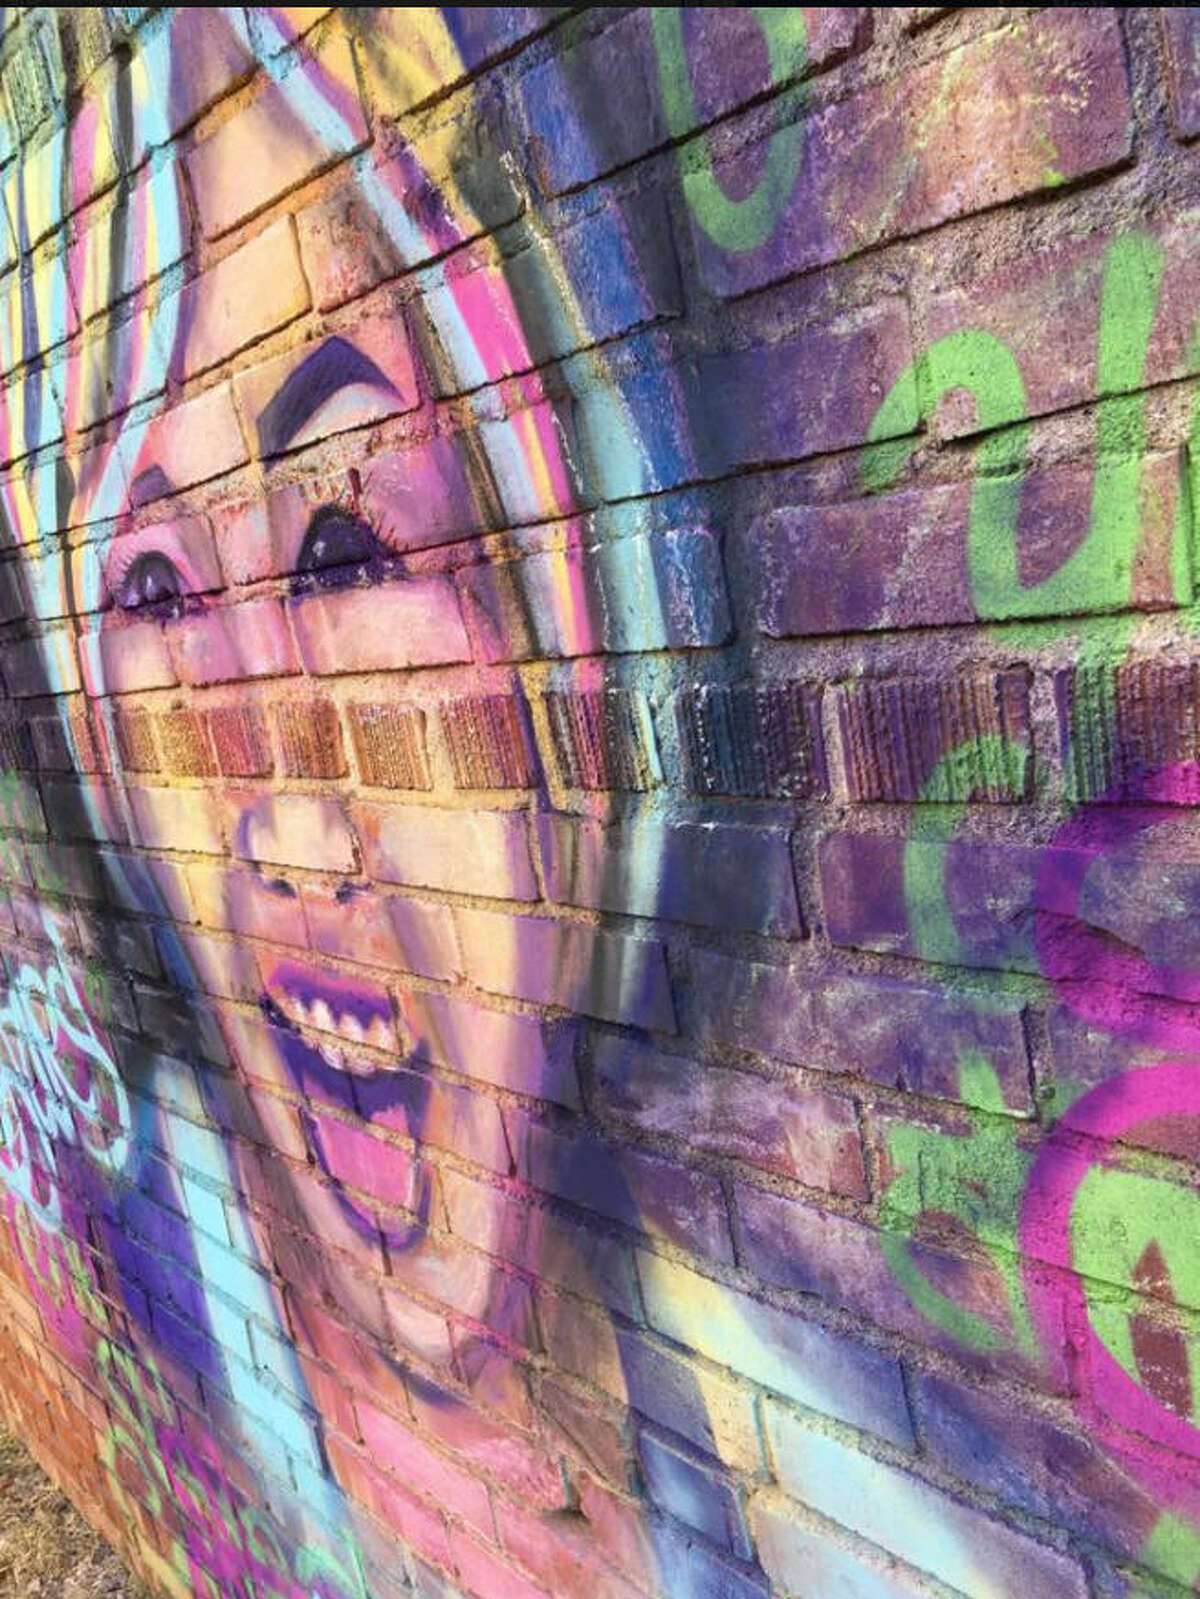 An artist from El Paso traveled to Alpine on Saturday, April 22, 2017, and painted a temporary mural honoring slain college student ZuZu Verk on the side of a record store. Verk, whose remains were found in February, would have been 23. Scroll through the gallery to see a timeline of the disappearance of ZuZu Verk